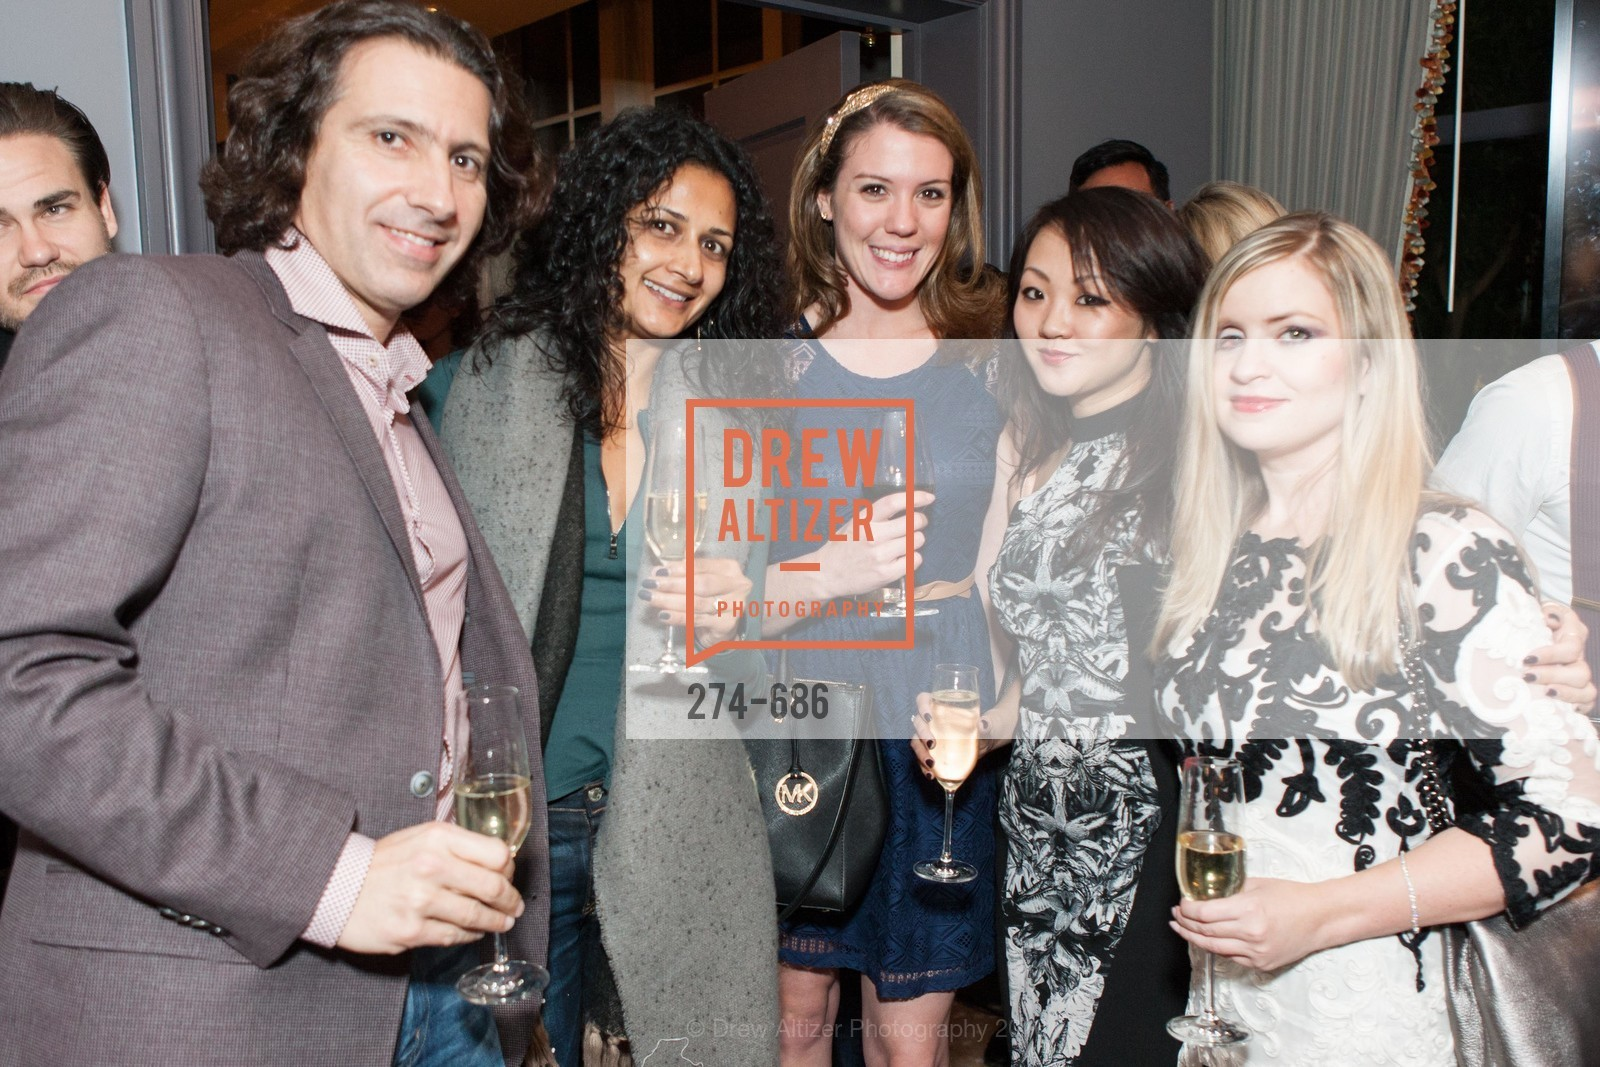 Jacamo Lamey, Samrah Khan, Kari Lincks, Tina Hui, Julie Hall, Photo #274-686